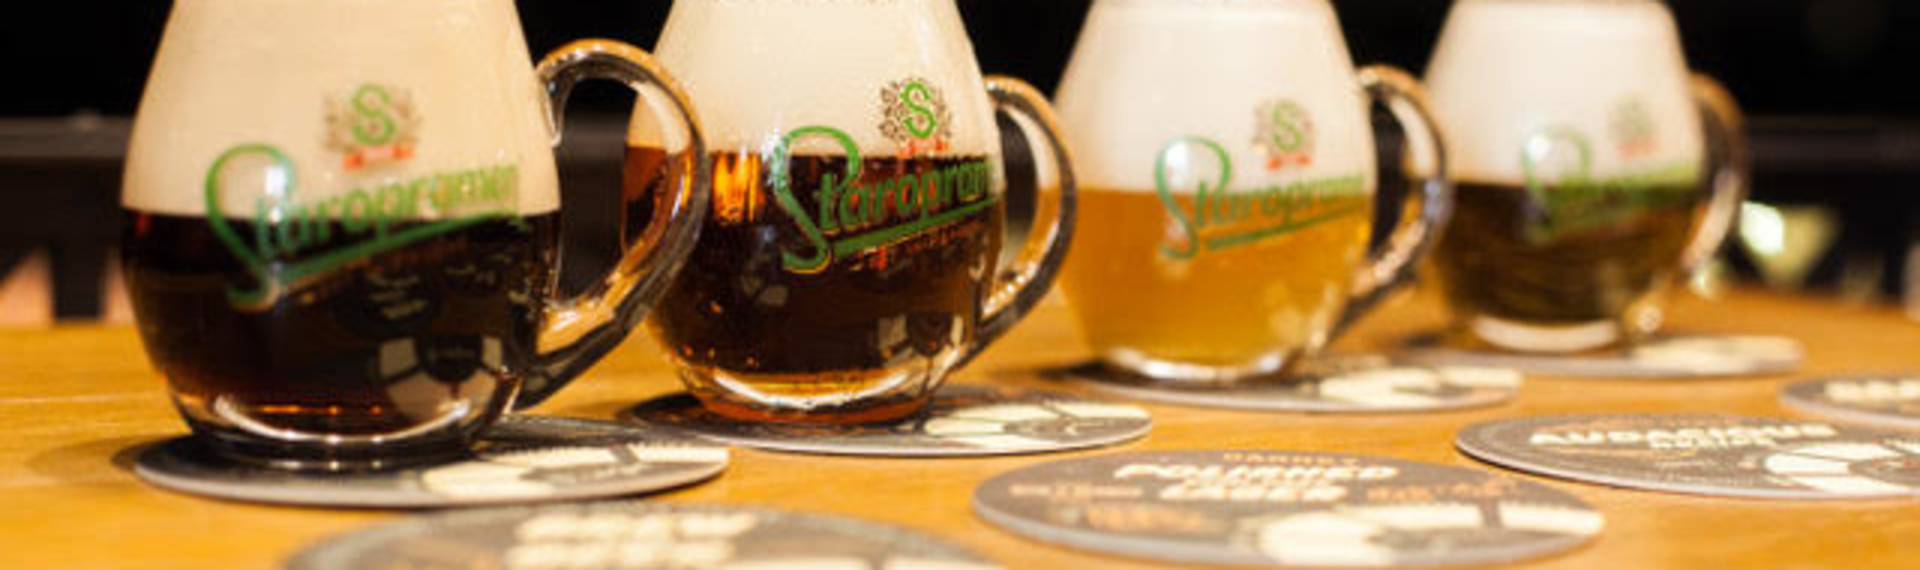 Prague Brewery Tour image